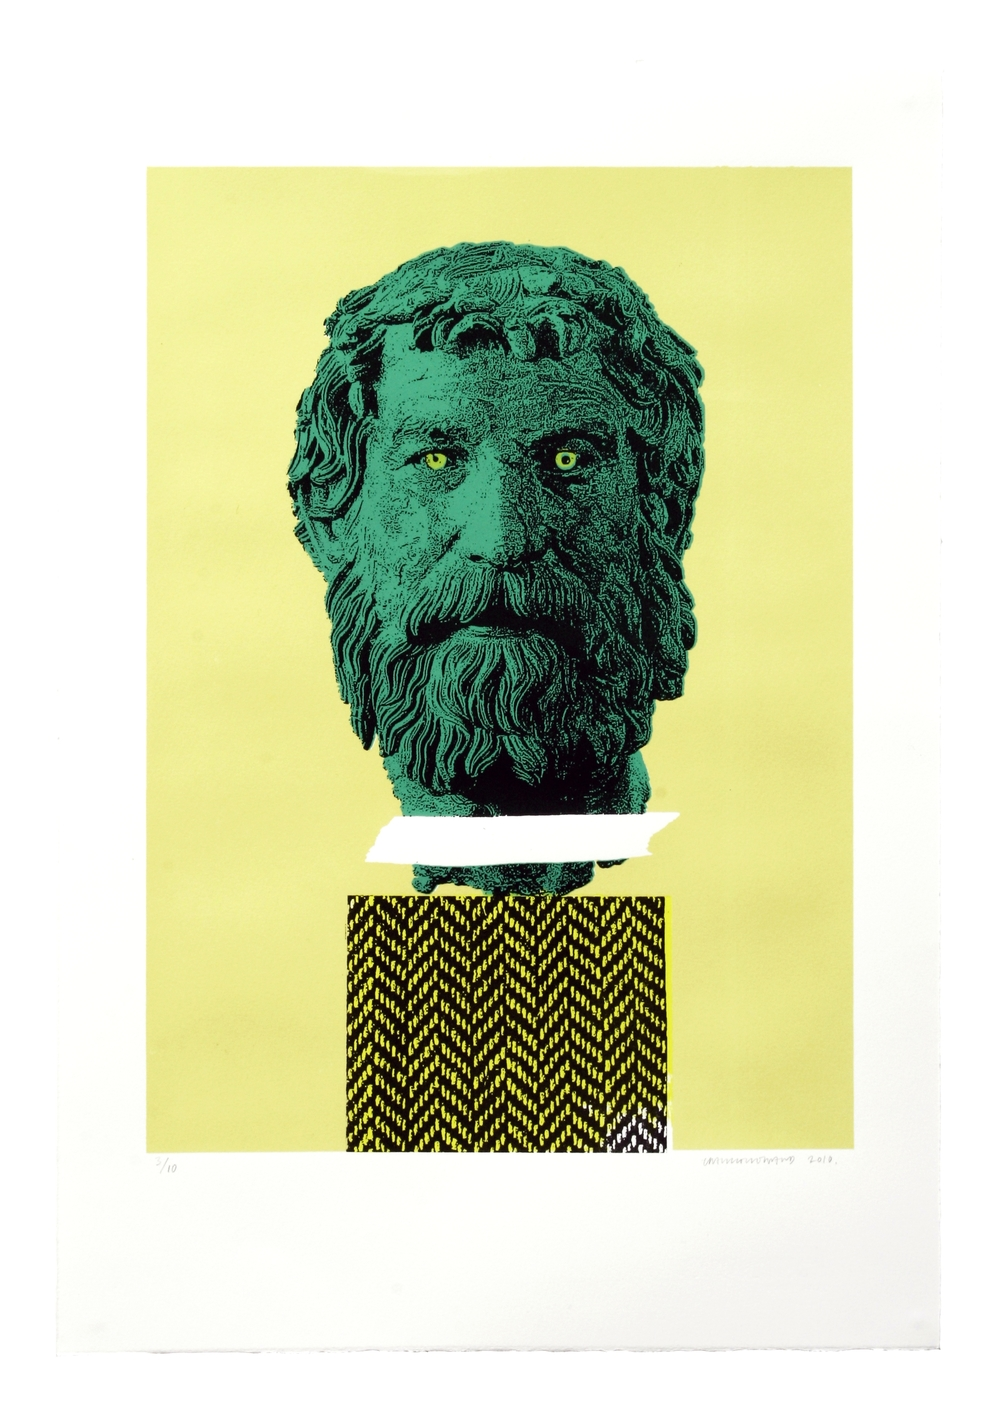 Untitled (Green Greek Head)